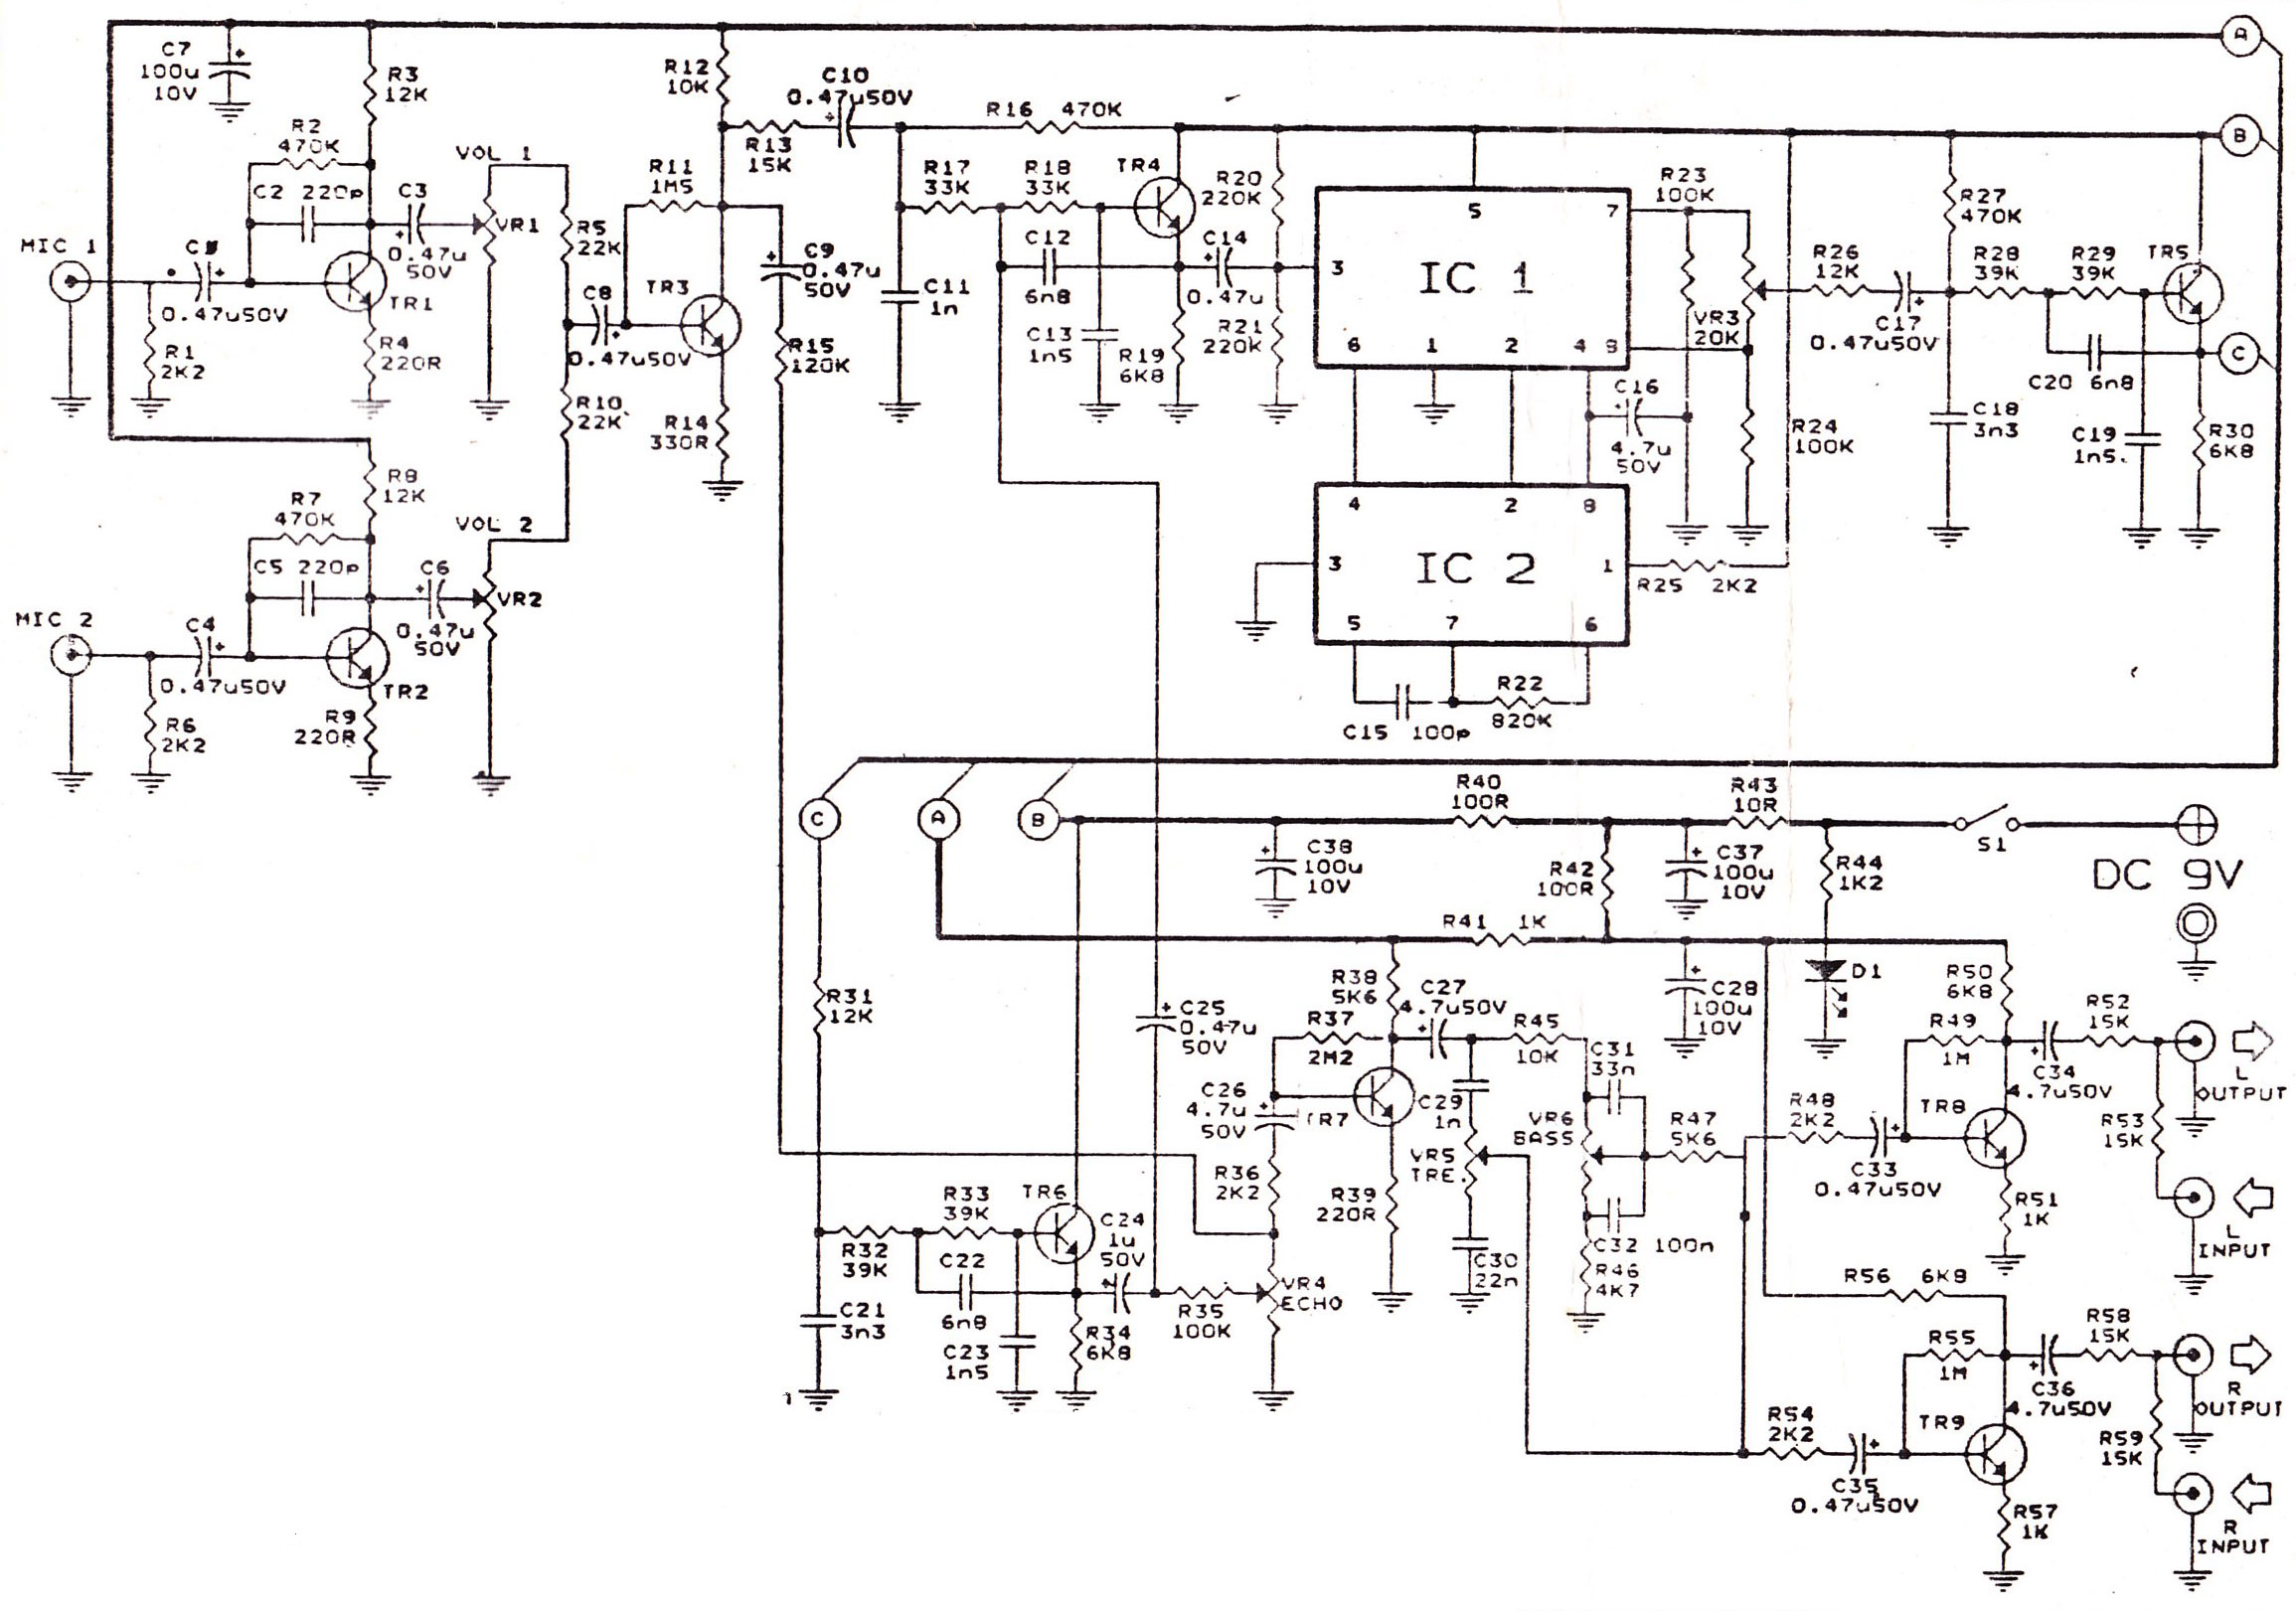 Wireless Microphone Schematic